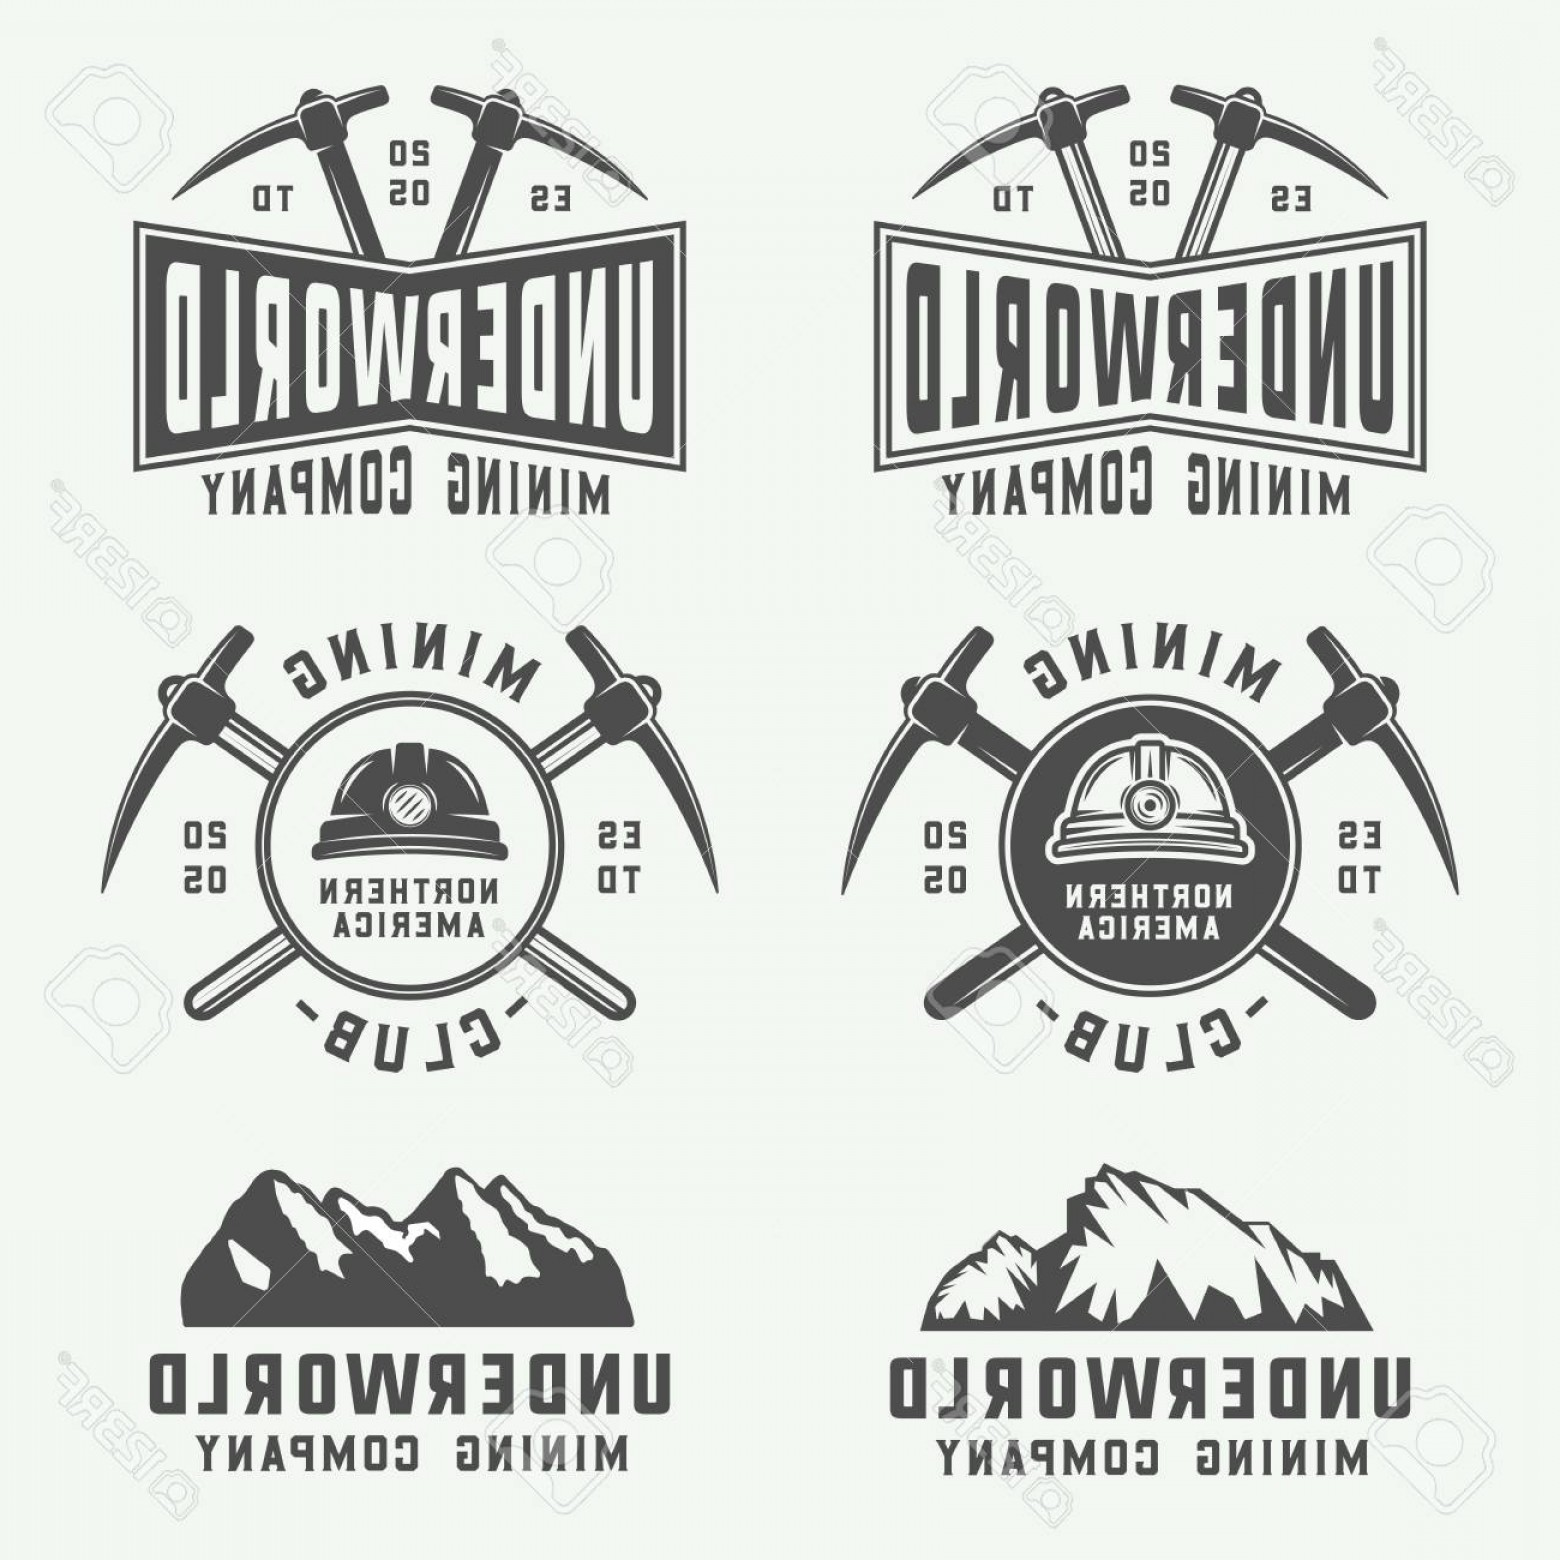 Construction Logos Vector Black And White: Photostock Vector Set Of Retro Mining Or Construction Logos Badges Emblems And Labels In Vintage Style Monochrome Grap